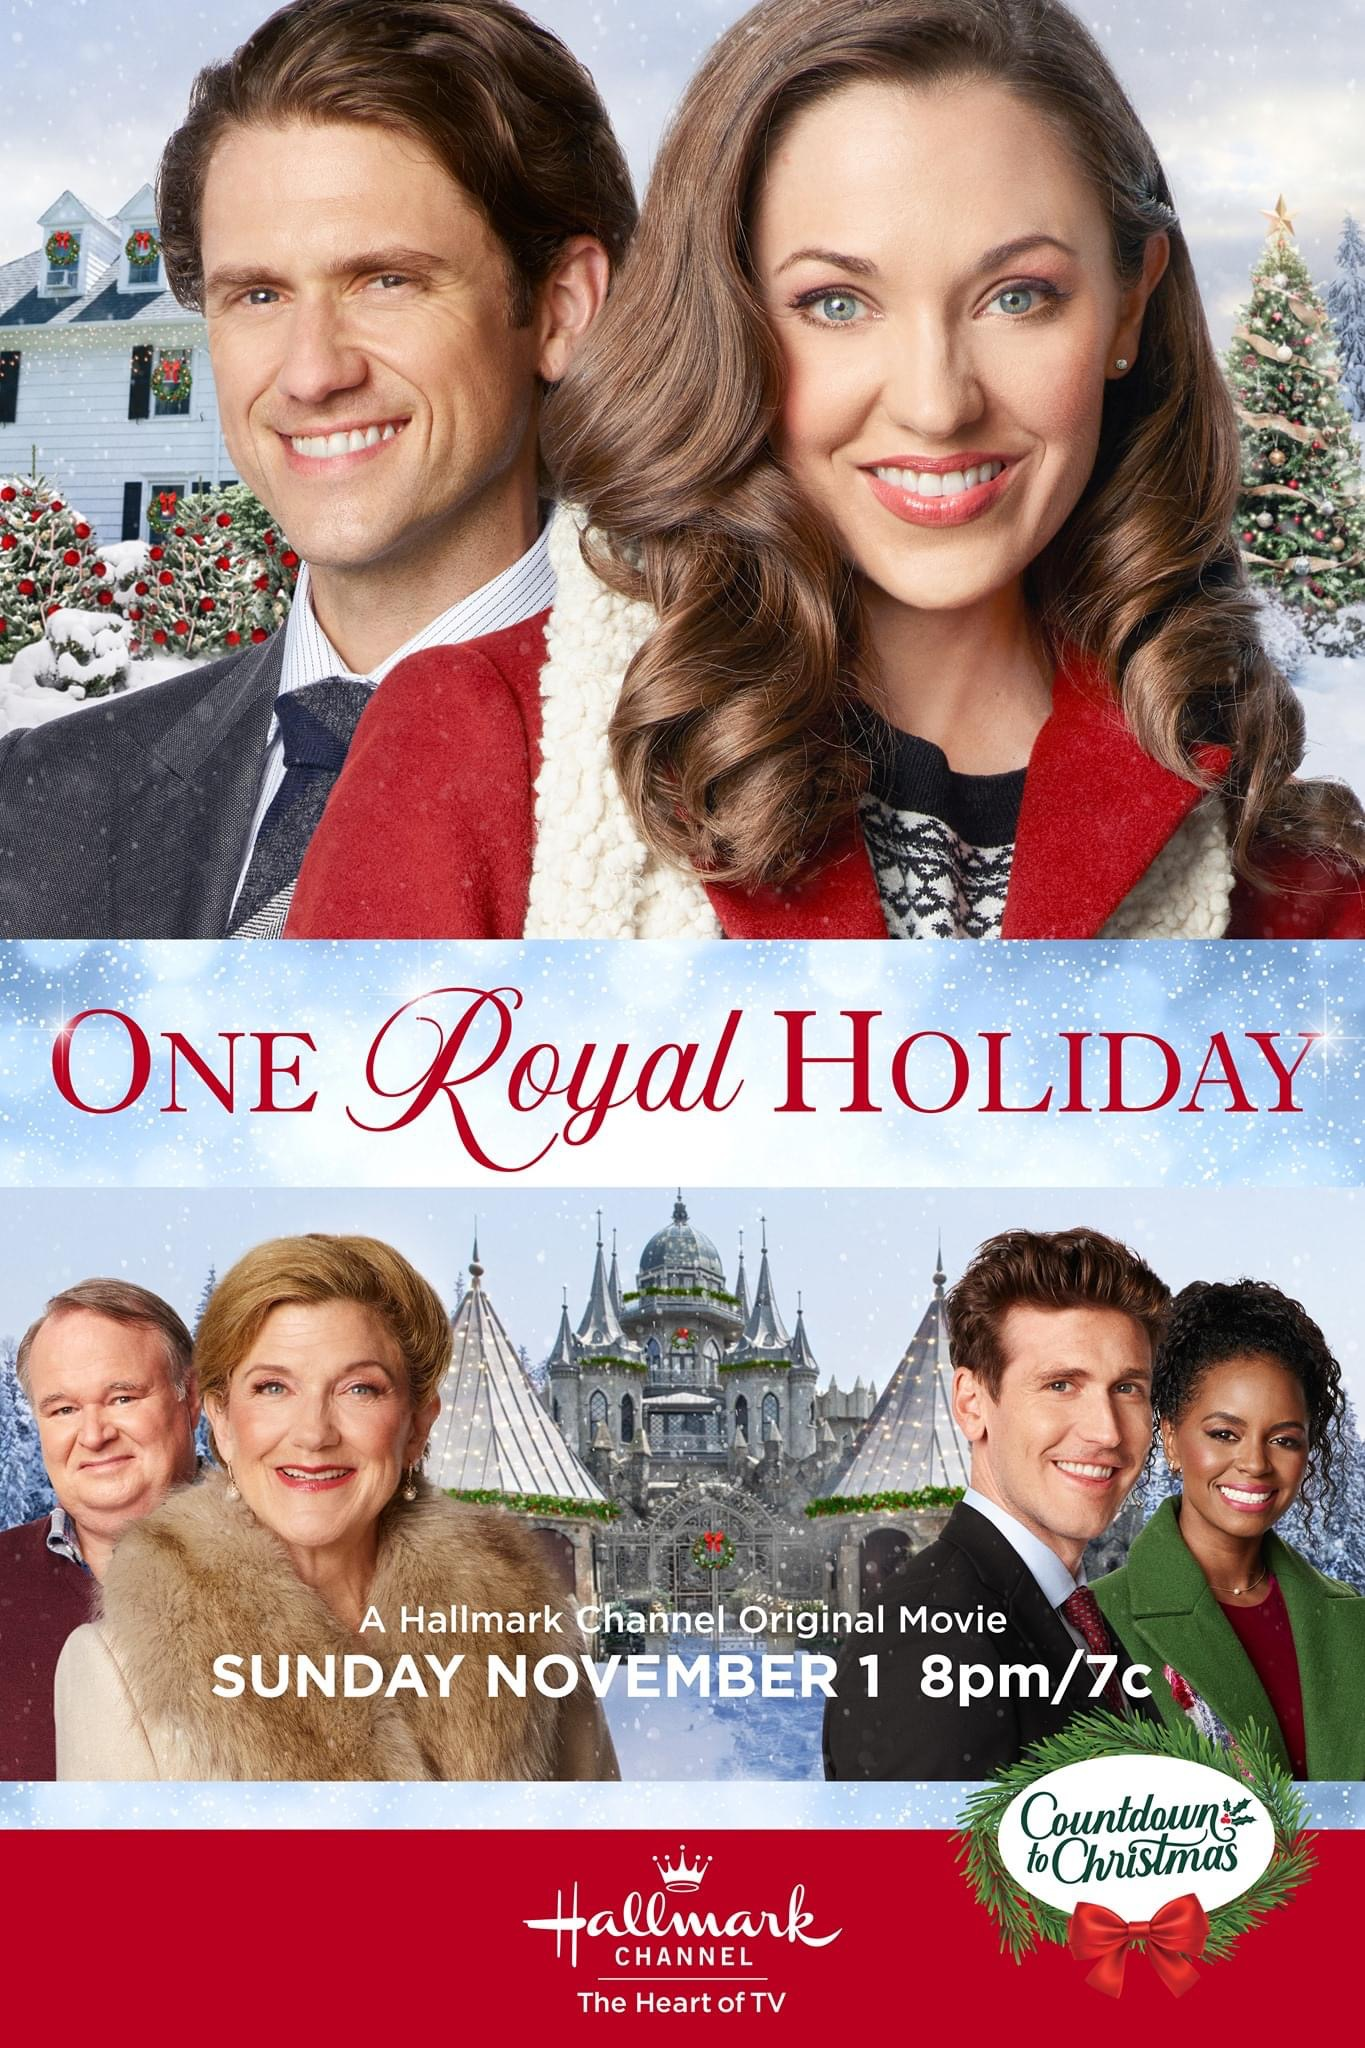 """Movie Poster for Hallmark's One Royal Holiday. The top half of the poster features Laura Osnes in a black and white sweater, red coat, and off-white scarf standing in front of Aaron Tevit in a navy tie, white ribbed shirt, and gray jacket. They are standing in front  of a white house with wreathes in the windows, snow on the ground, and Christmas trees out front. The bottom half features Victoria Clark, Tom McGowan, Krystal Joy Brown, and Bradley Rose in wool coats, standing in front of a castle. In the middle are the words """"One Royal Holiday"""" and in the bottom right hand corner a plain wreath with a red bow surrounds the words """"Countdown to Christmas."""" Flavorlab Sound provided full service audio post production for the film."""